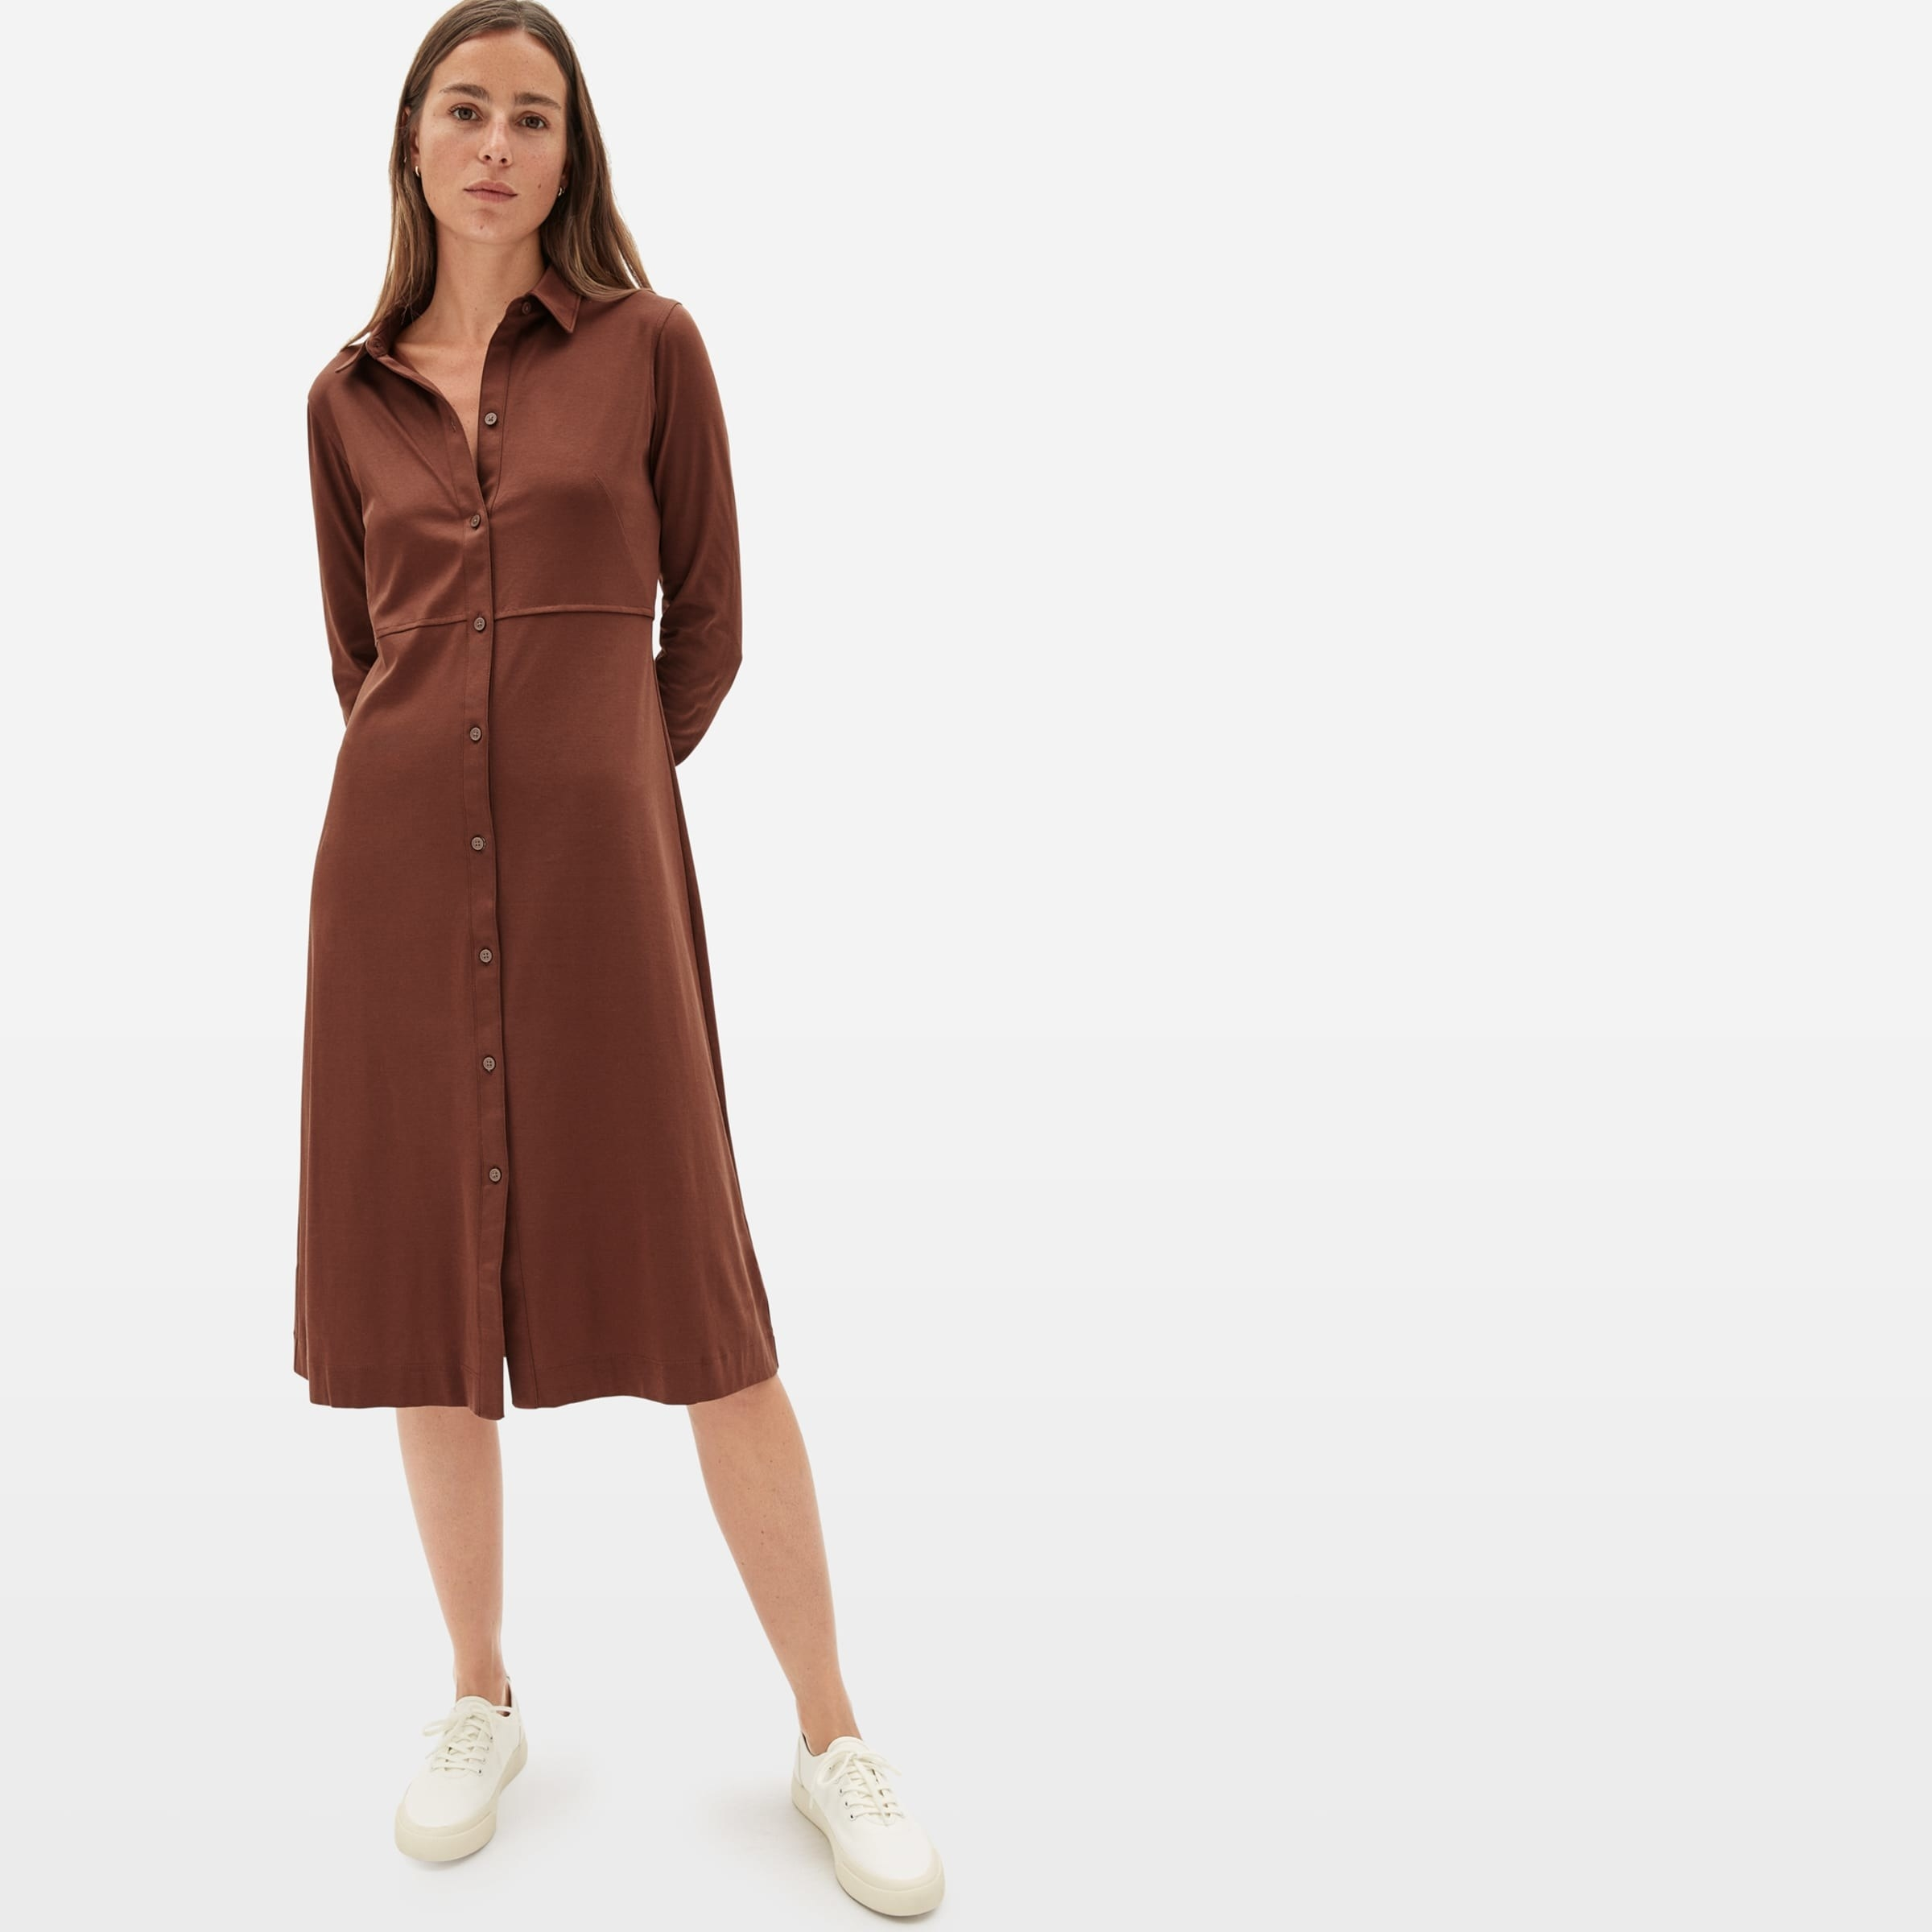 Reviewer wearing the collared brown dress, which has buttons down the center